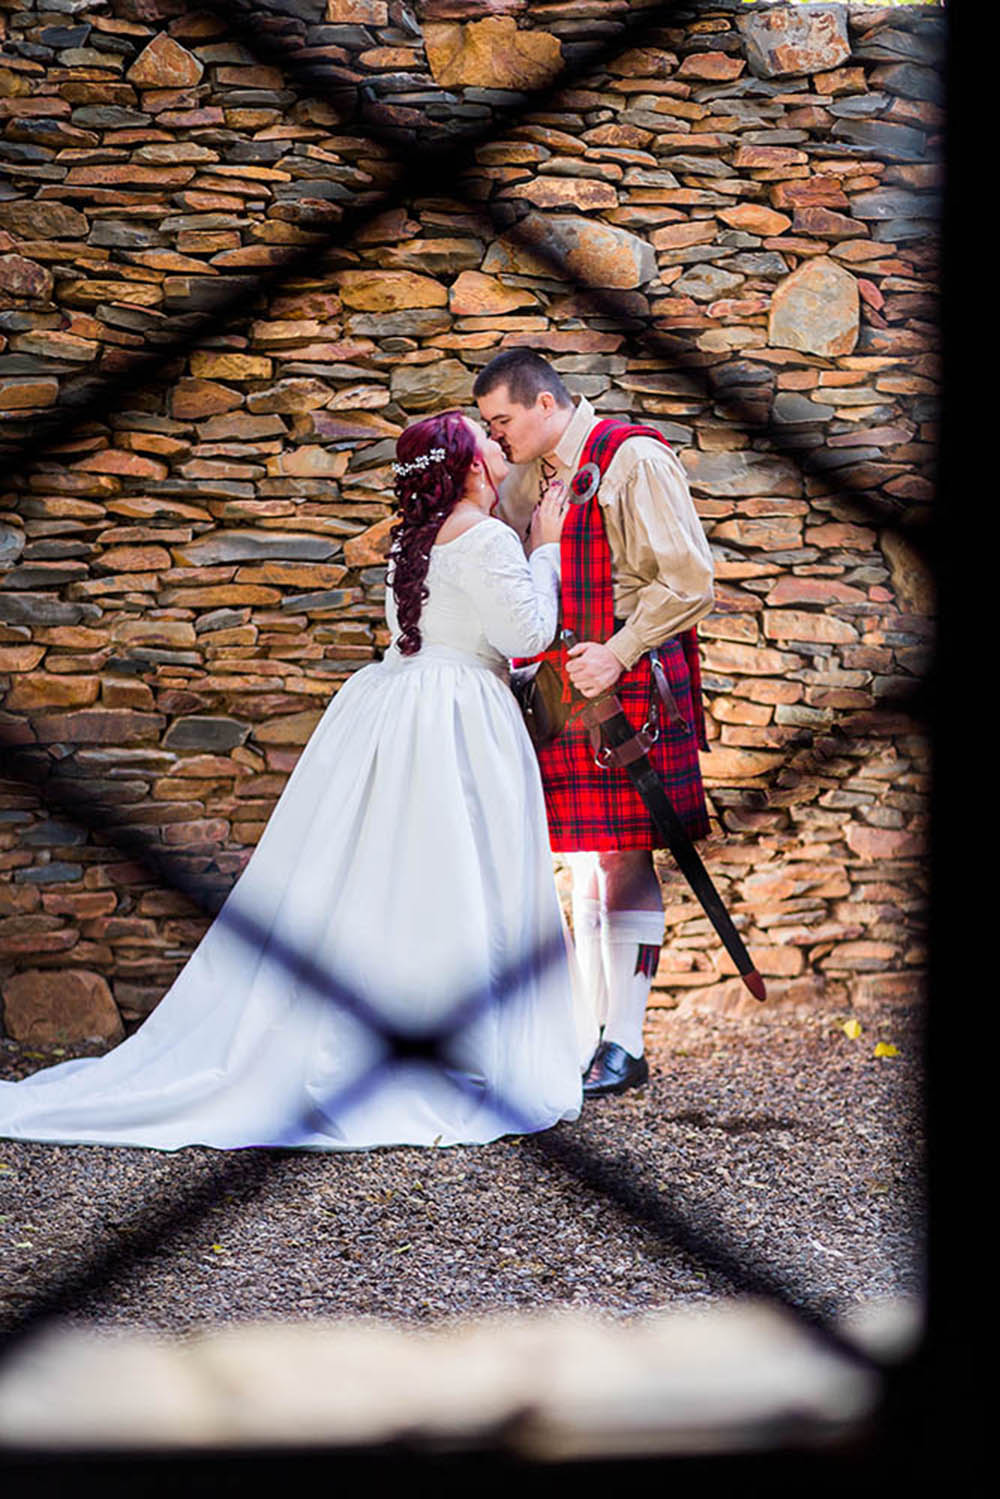 medieval-themed-wedding-medieval-wedding-dgr-photography-castle-wedding-93